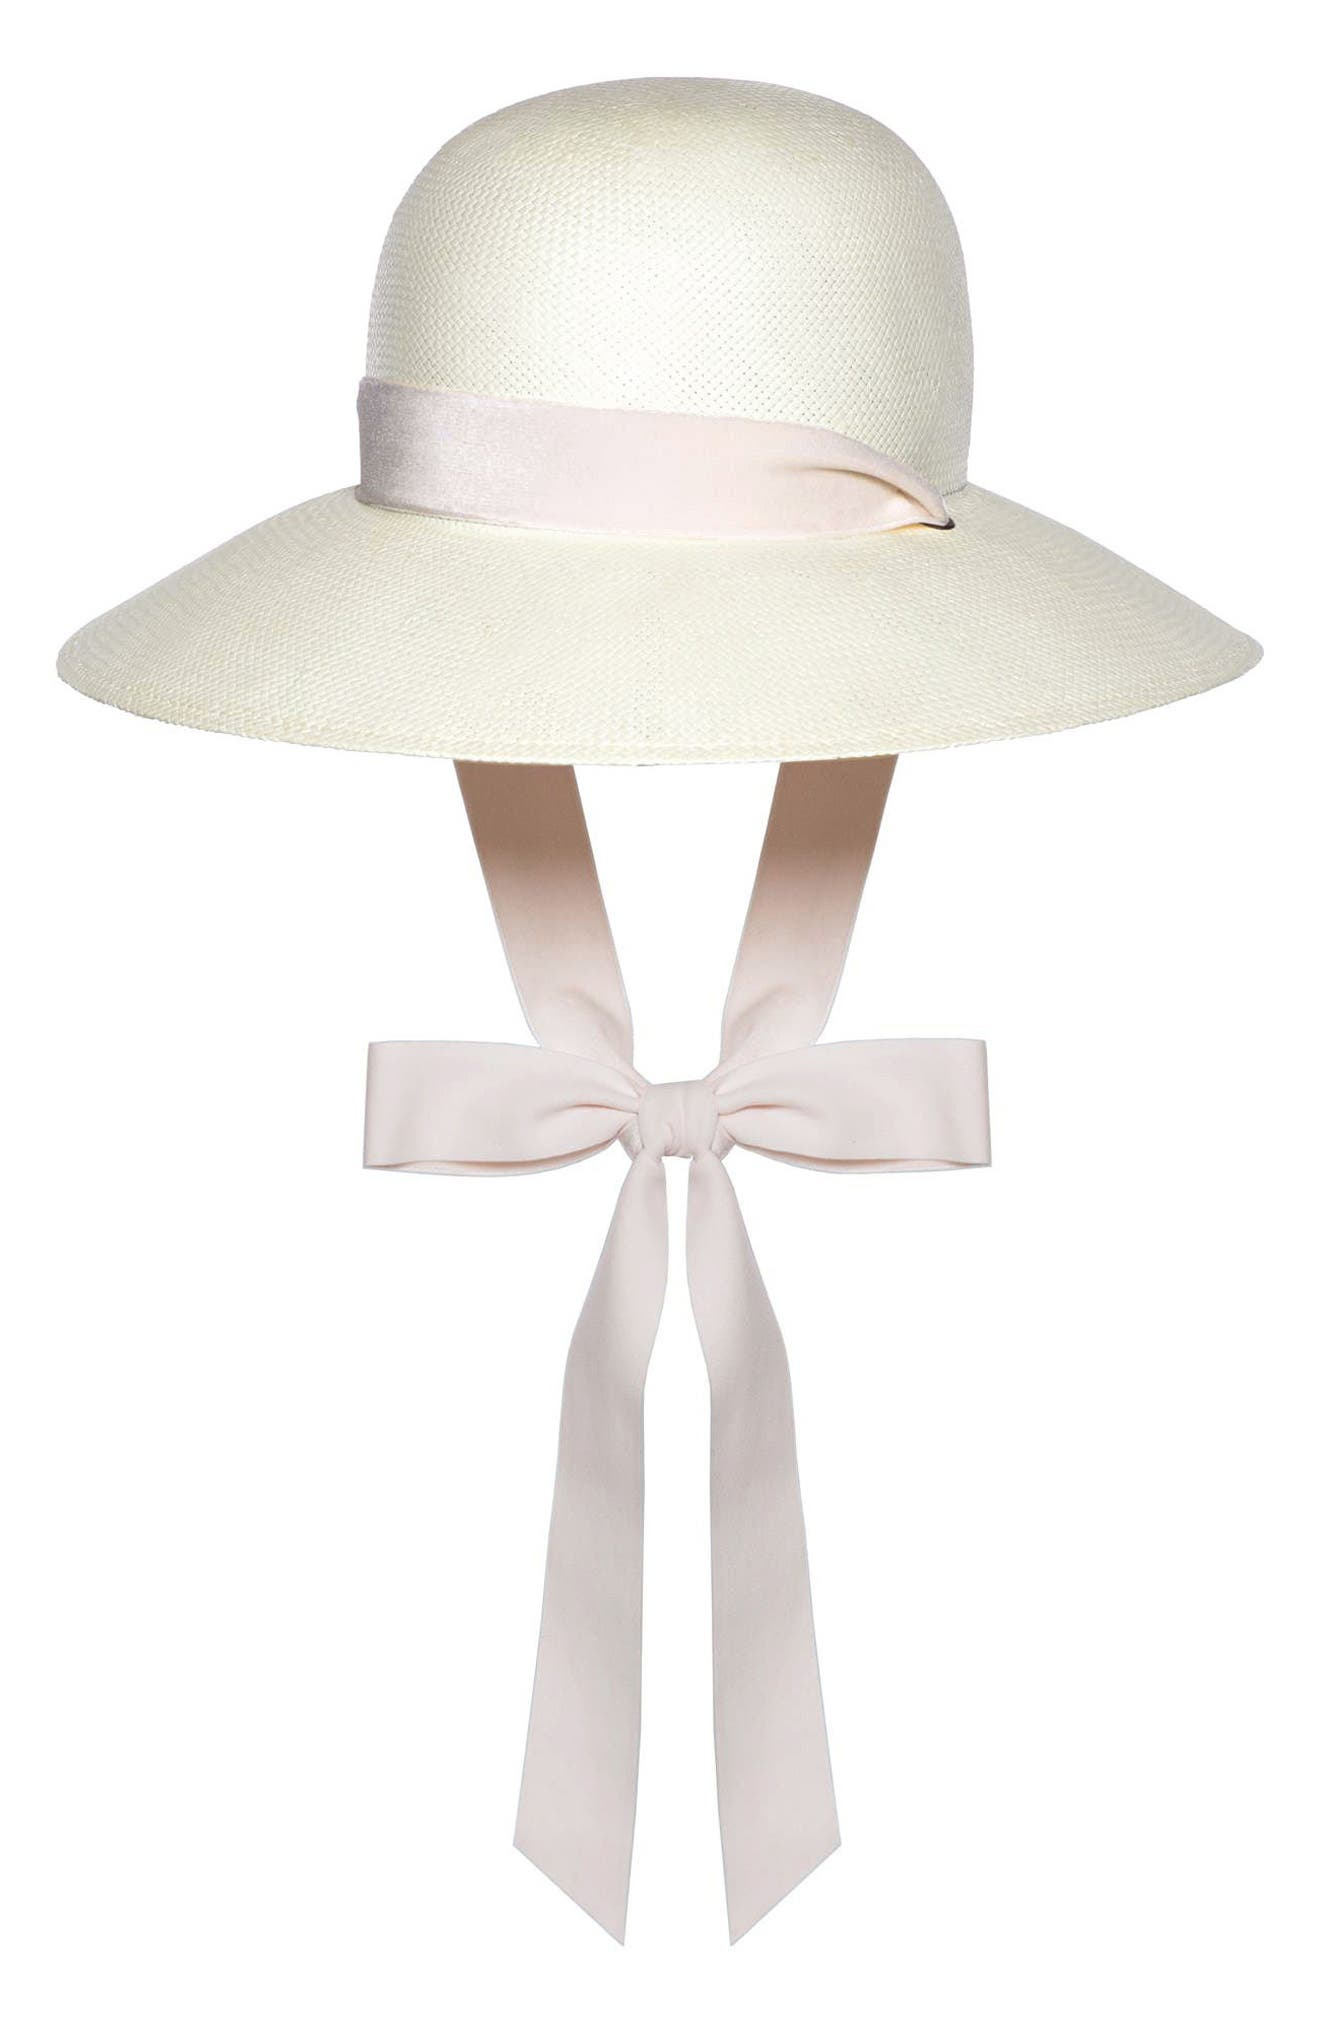 The Empress Velvet Ribbon Hat by Bijou Van Ness